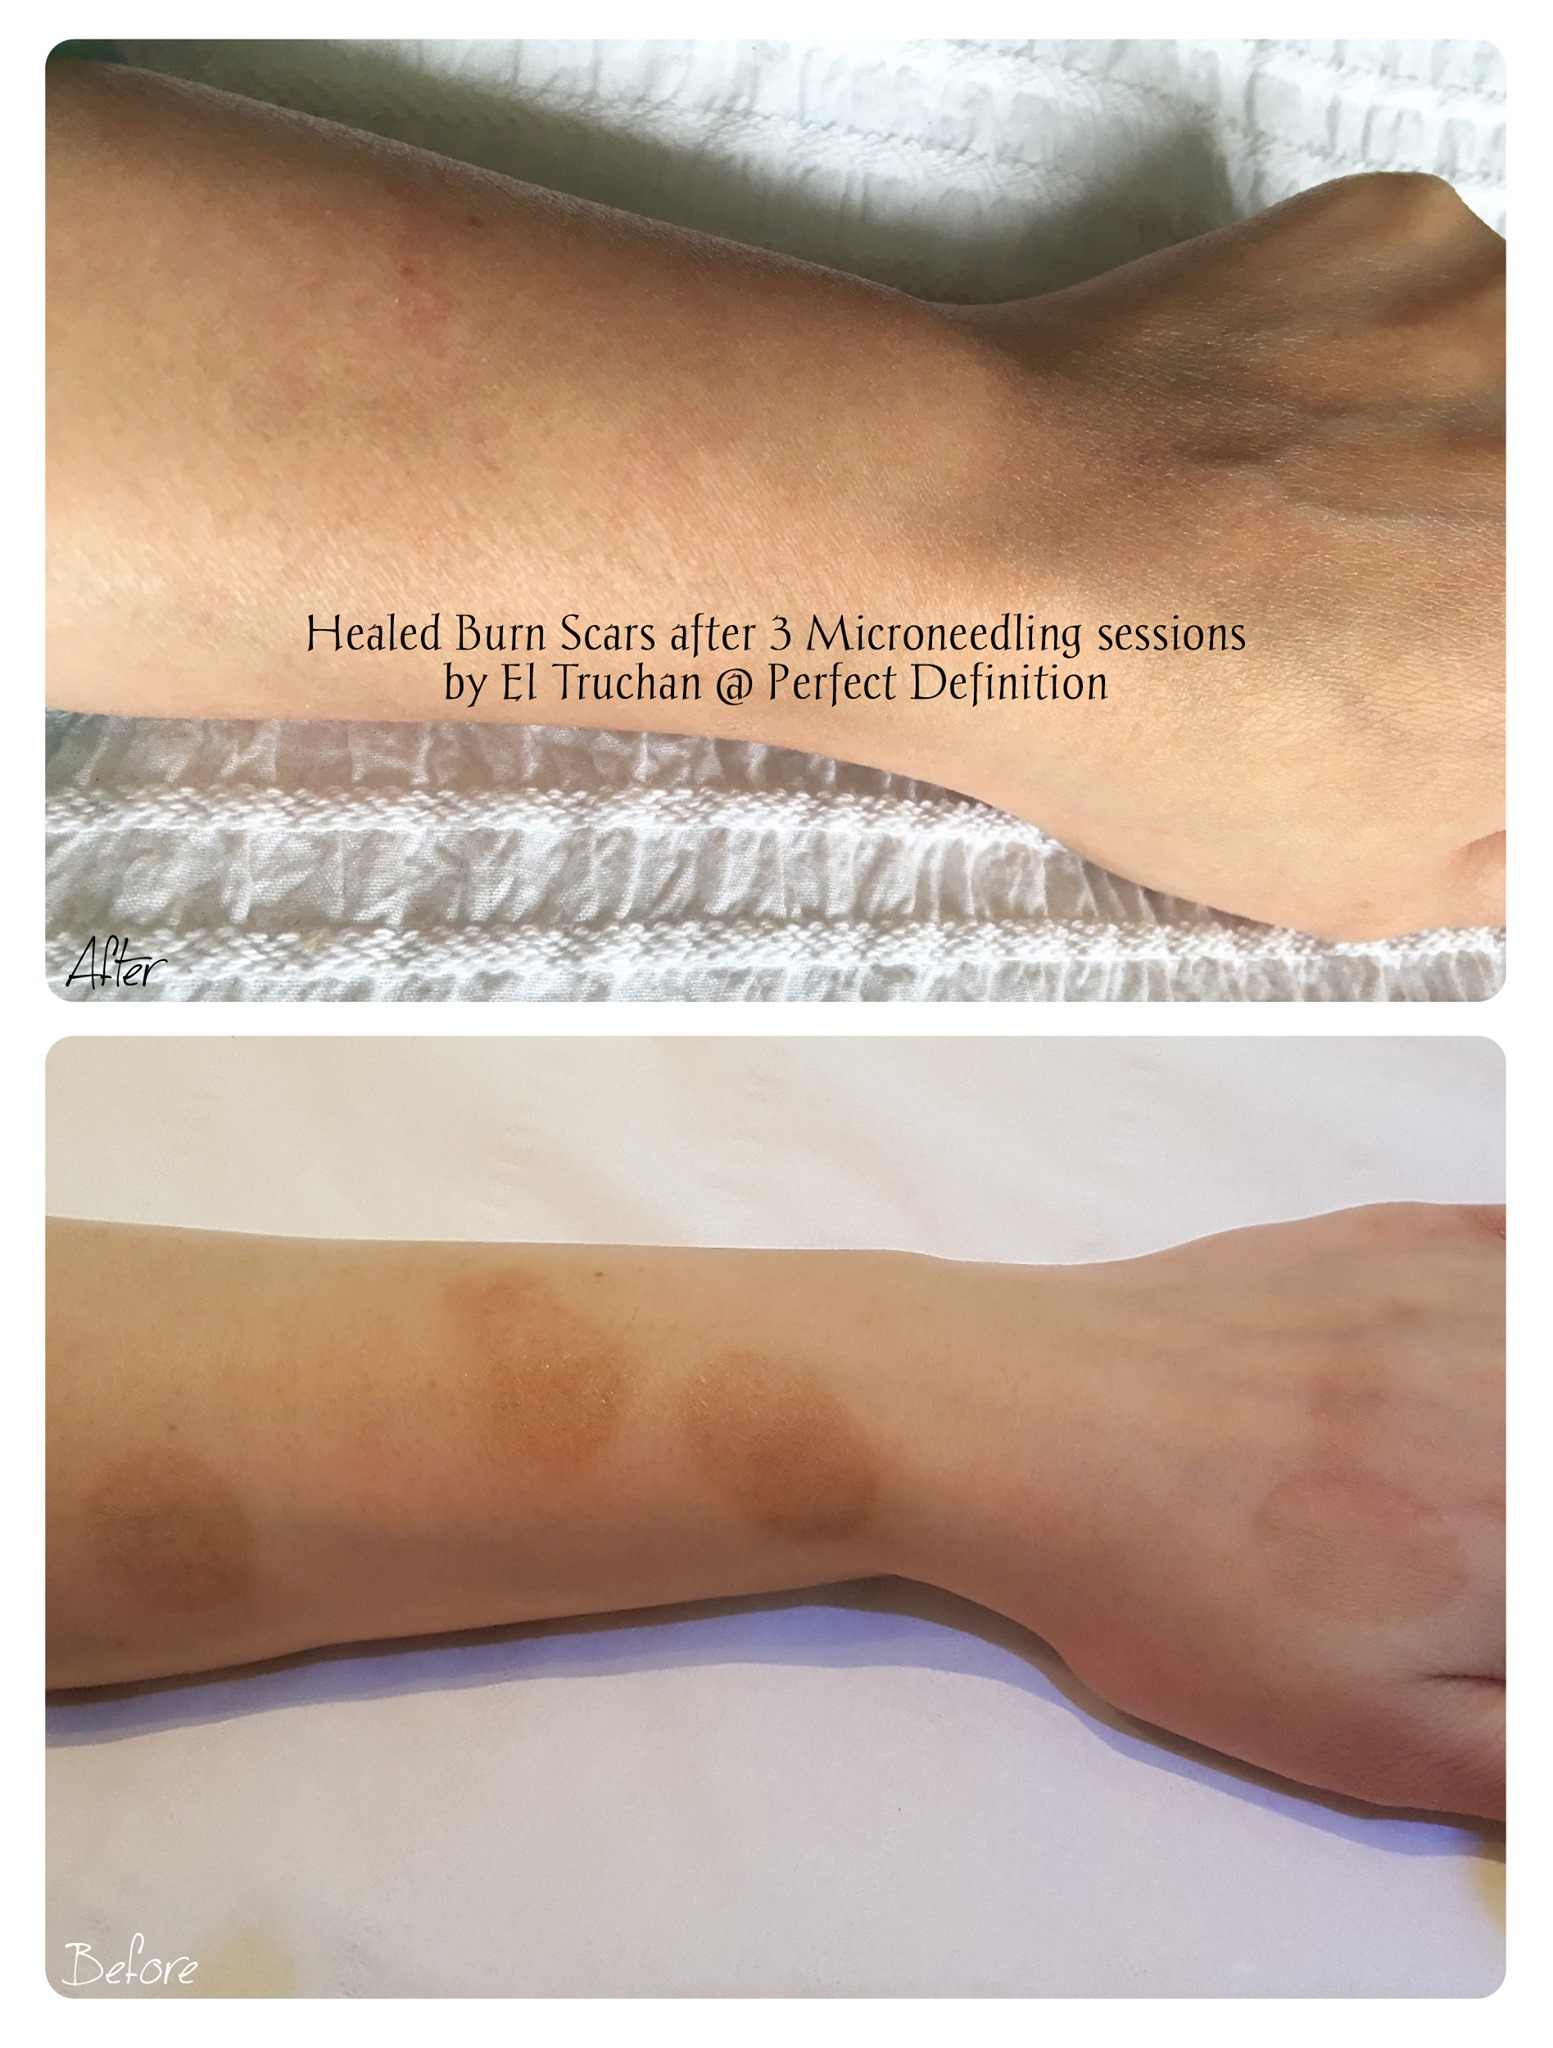 Healed Burn Scars after Microneedling Se